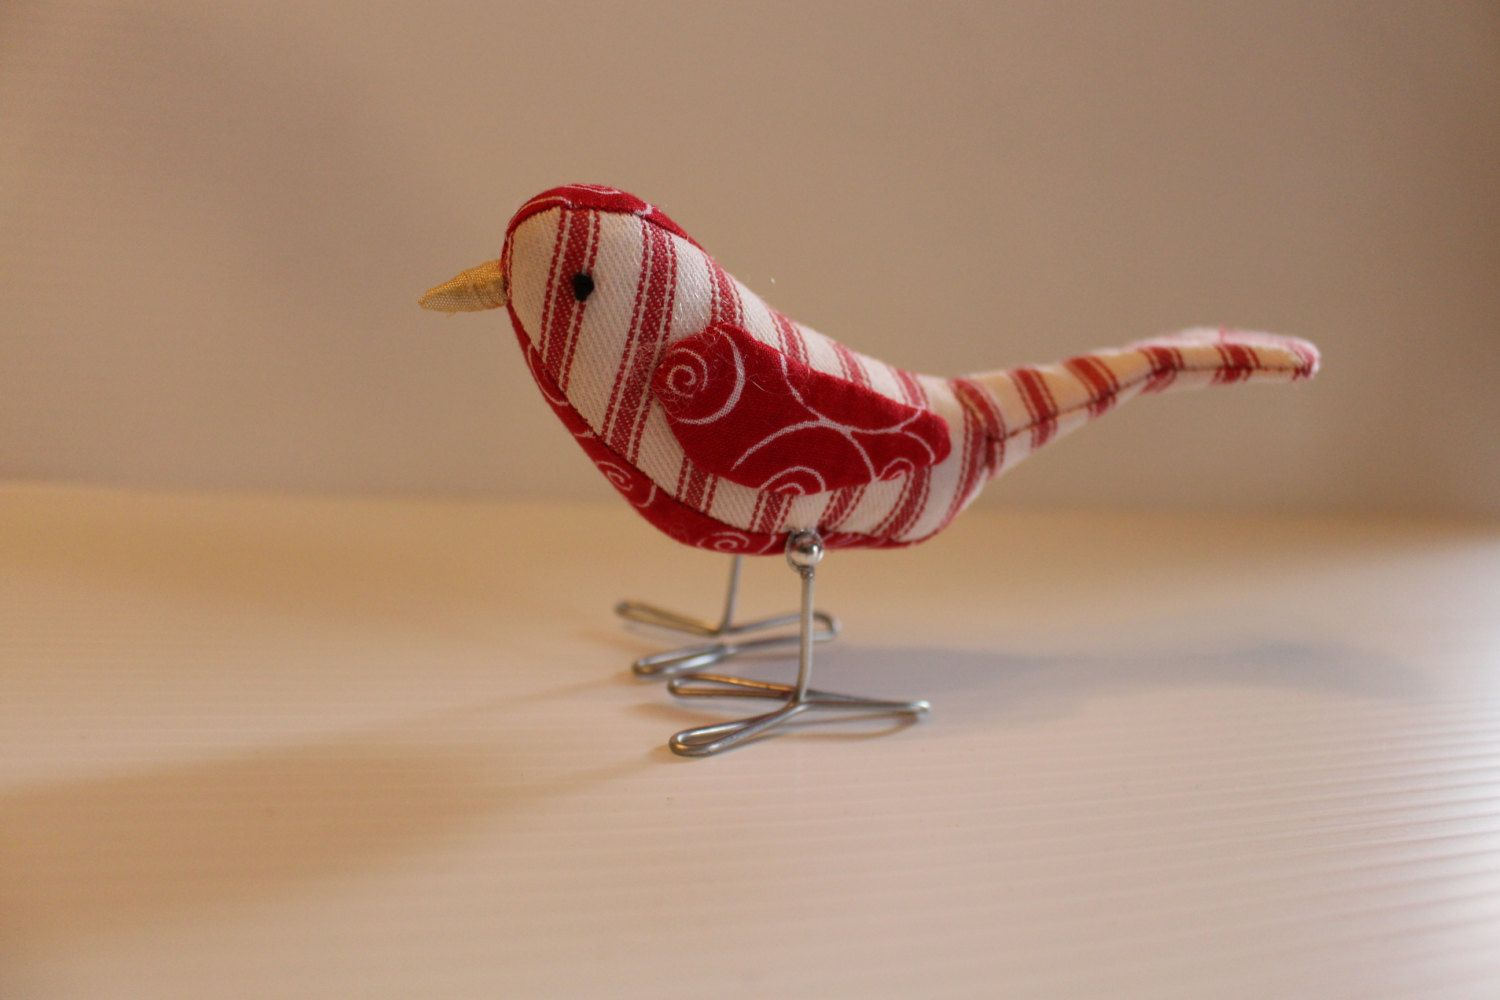 Christmas bird figurine made from red swirls and red striped pillow ticking fabrics, Christmas ornament, or bird decor by stitchopoly on Etsy